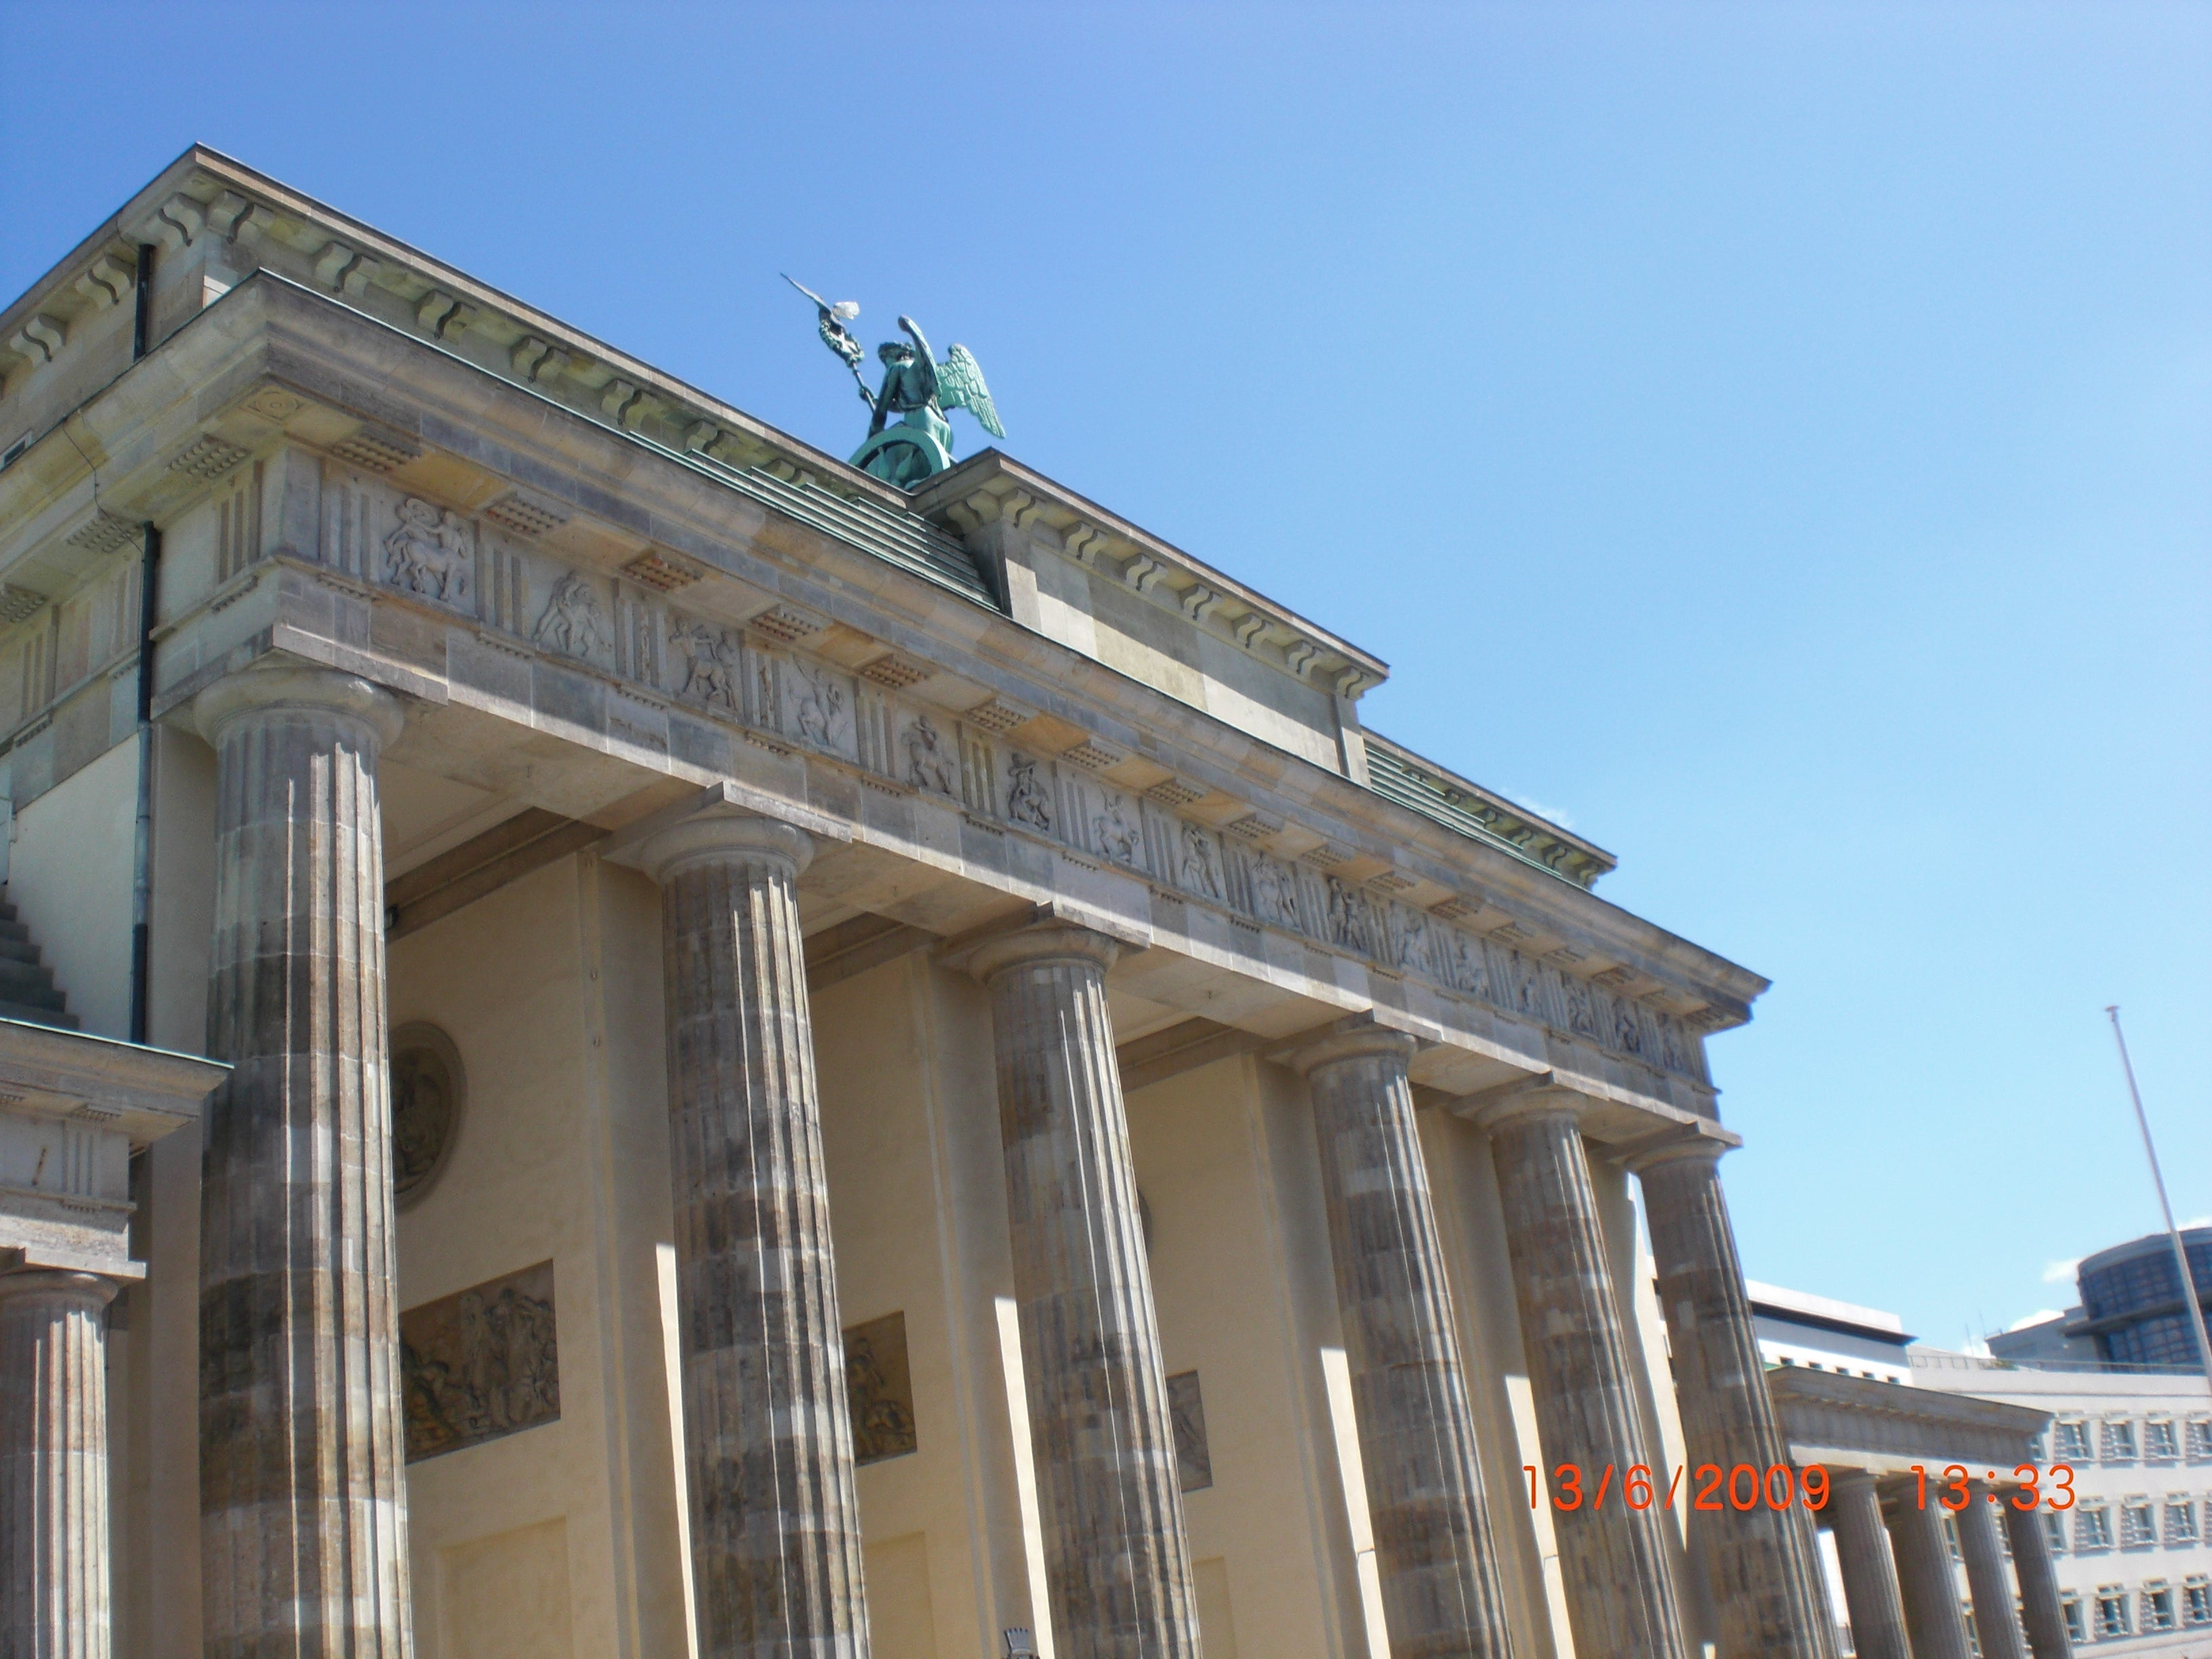 Architecture in Brandenburg Gate